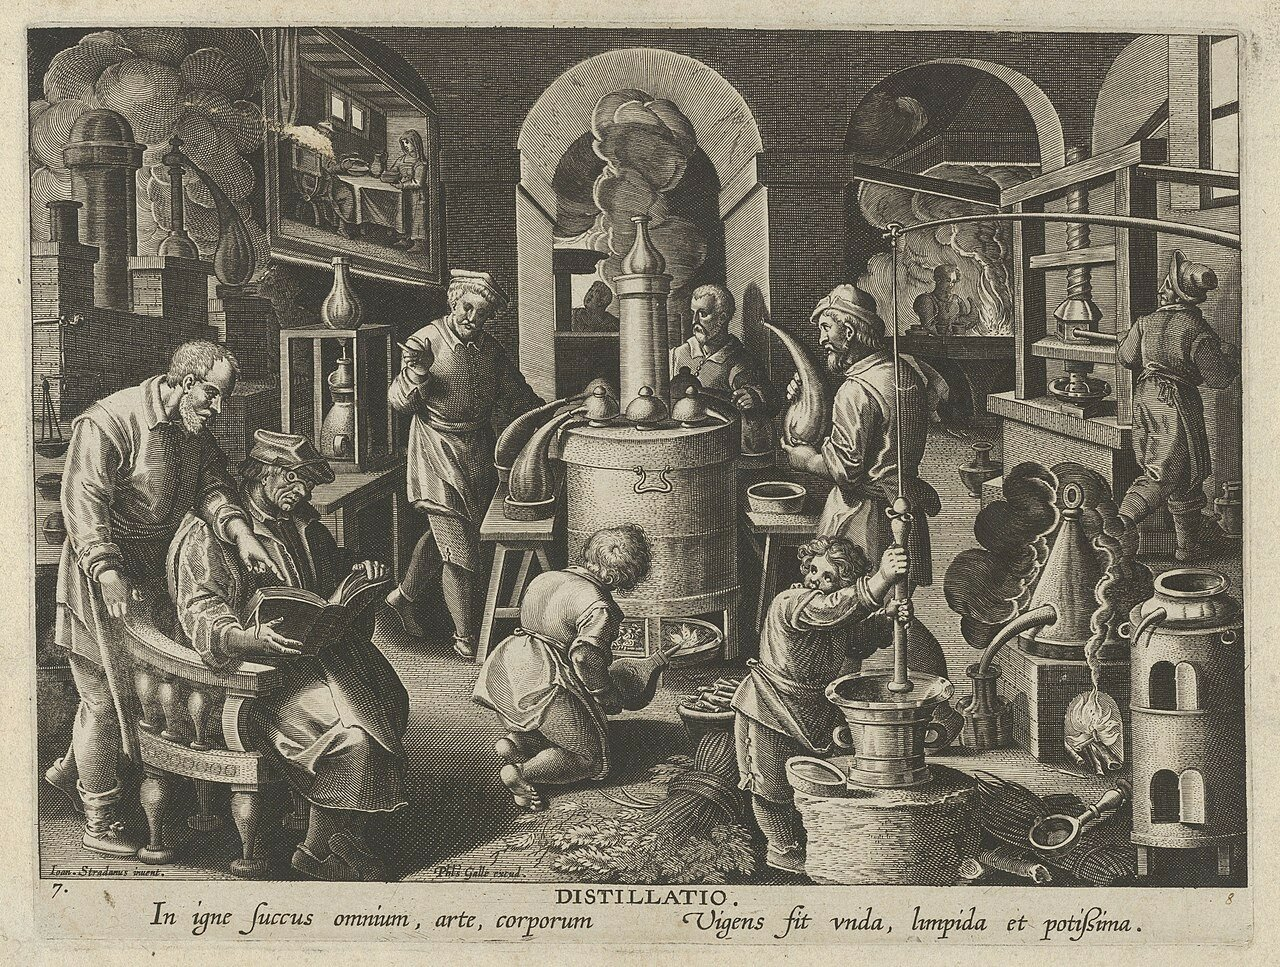 1280px-New_Inventions_of_Modern_Times_-Nova_Reperta-,_The_Invention_of_Distillation,_plate_7_MET_DP841129.jpg